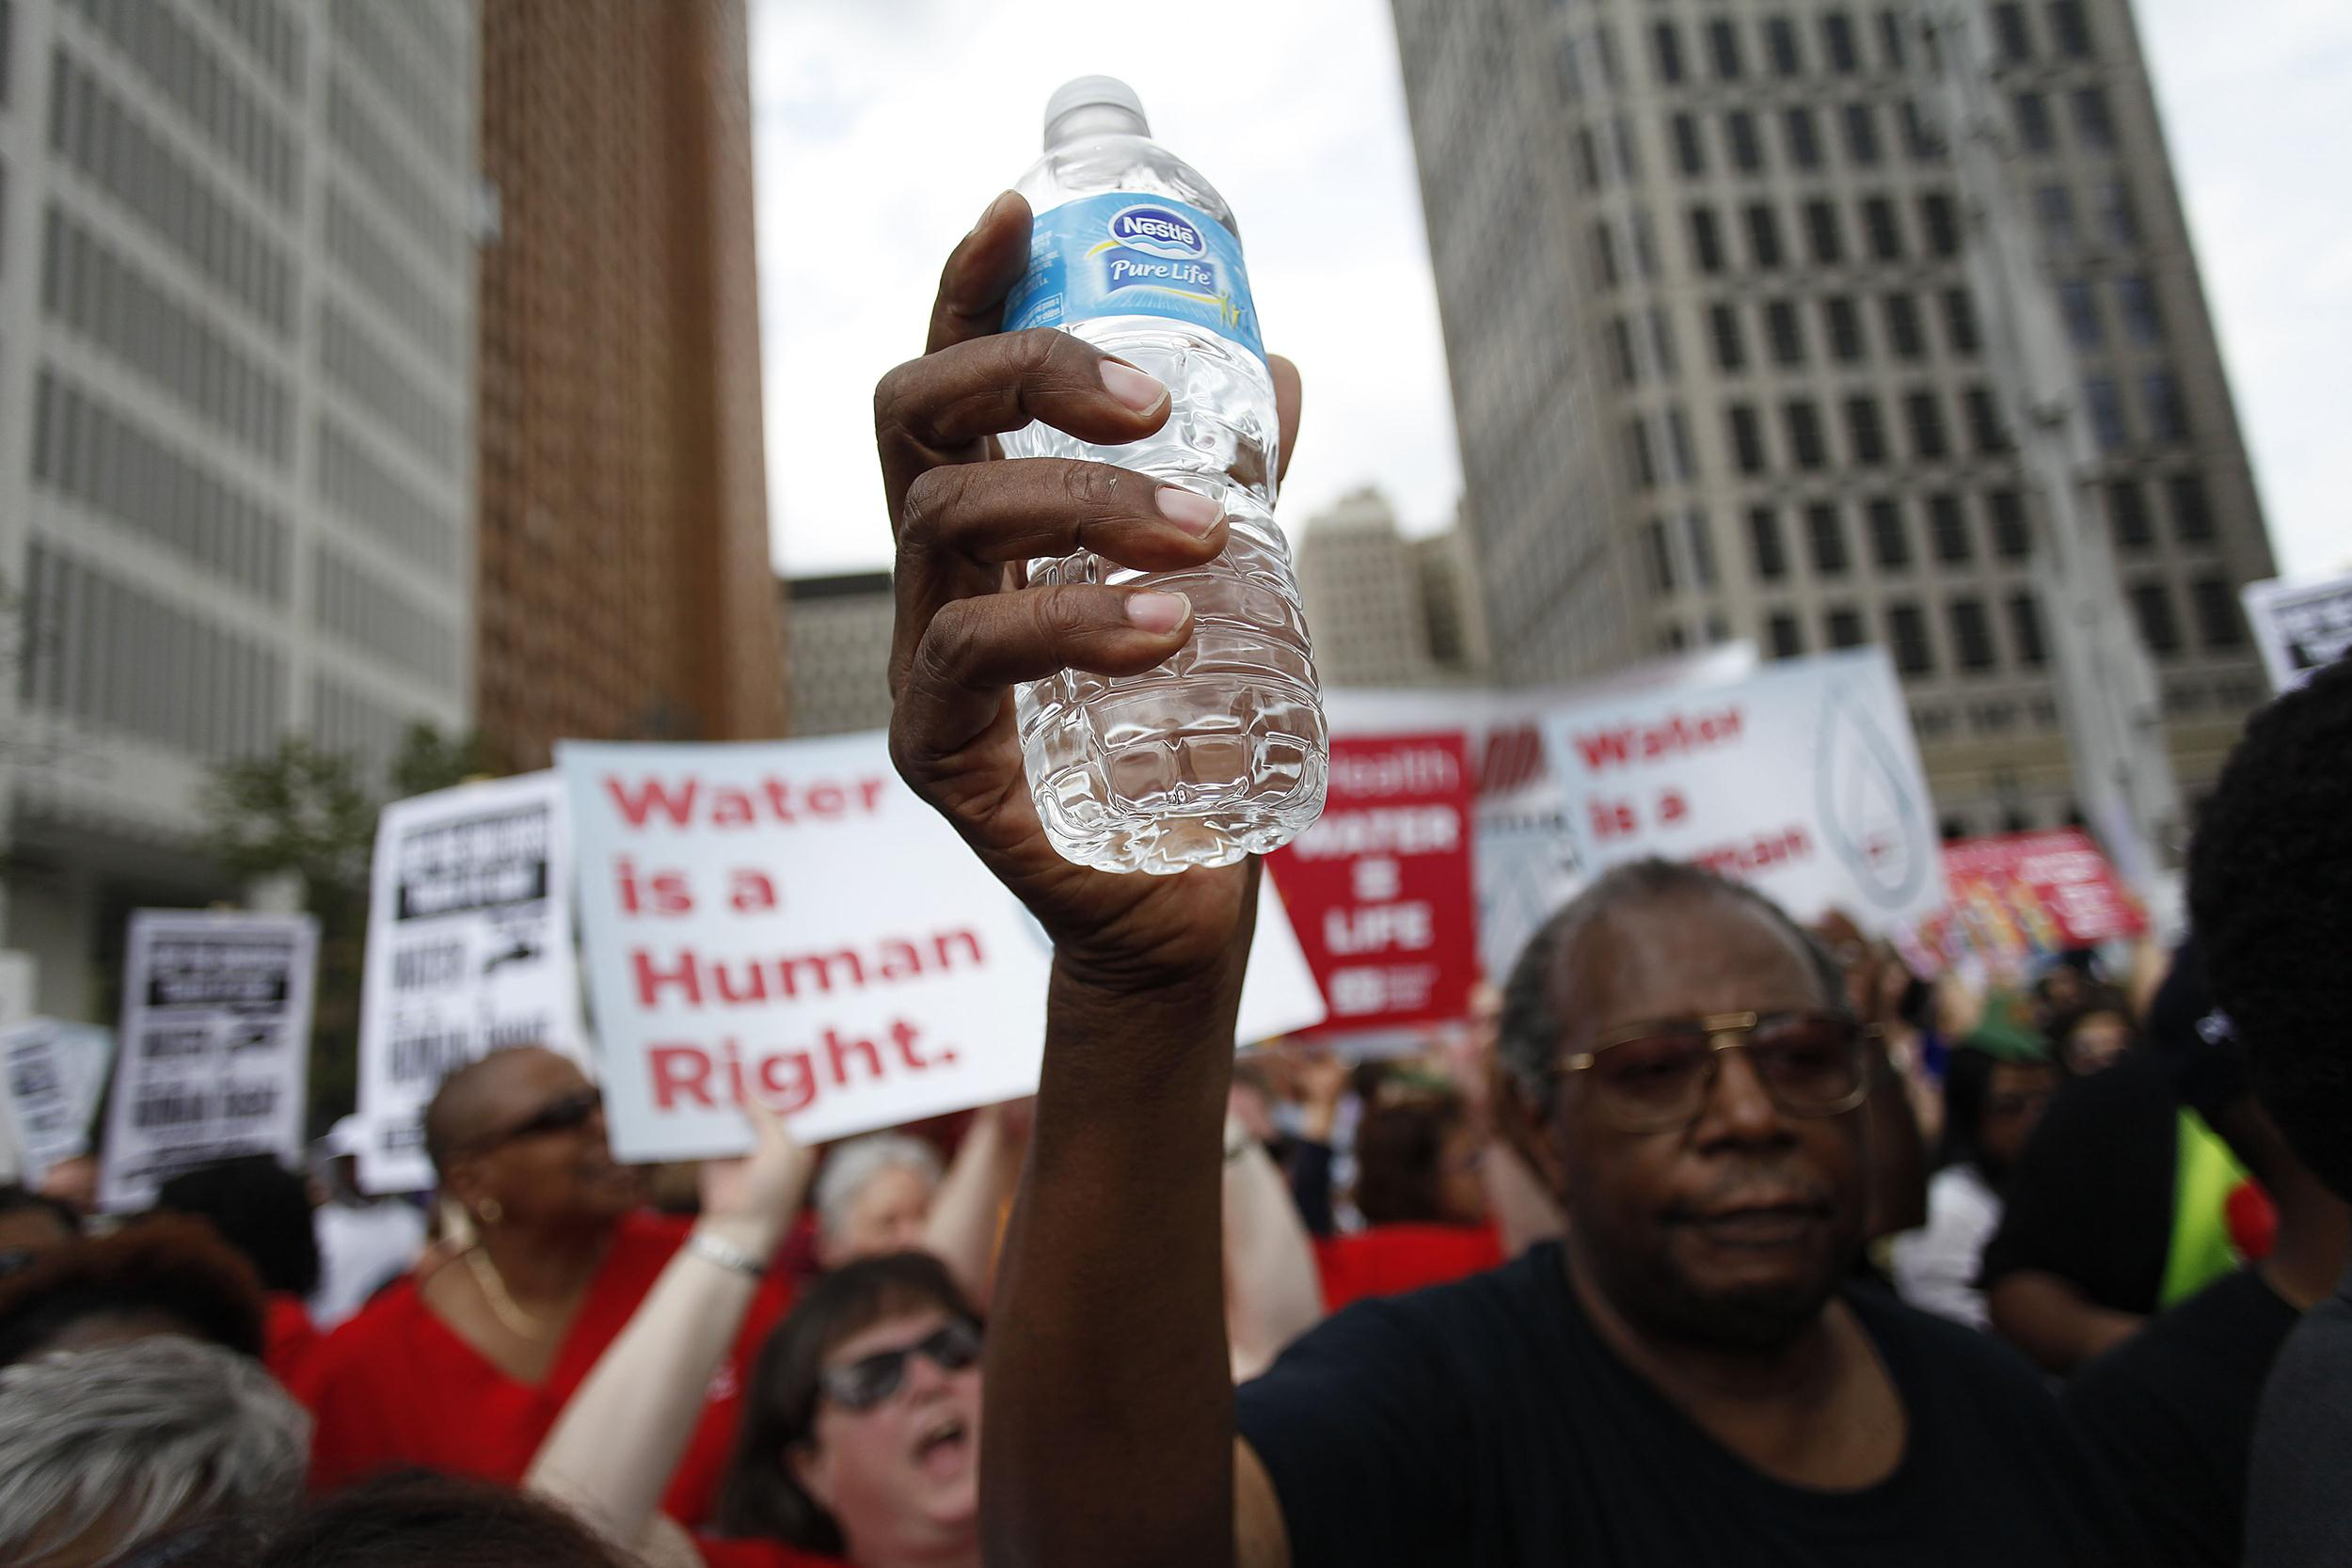 Image: Protest Advocate Water Access Is Basic Right, After City Of Detroit Starts Cutting Service